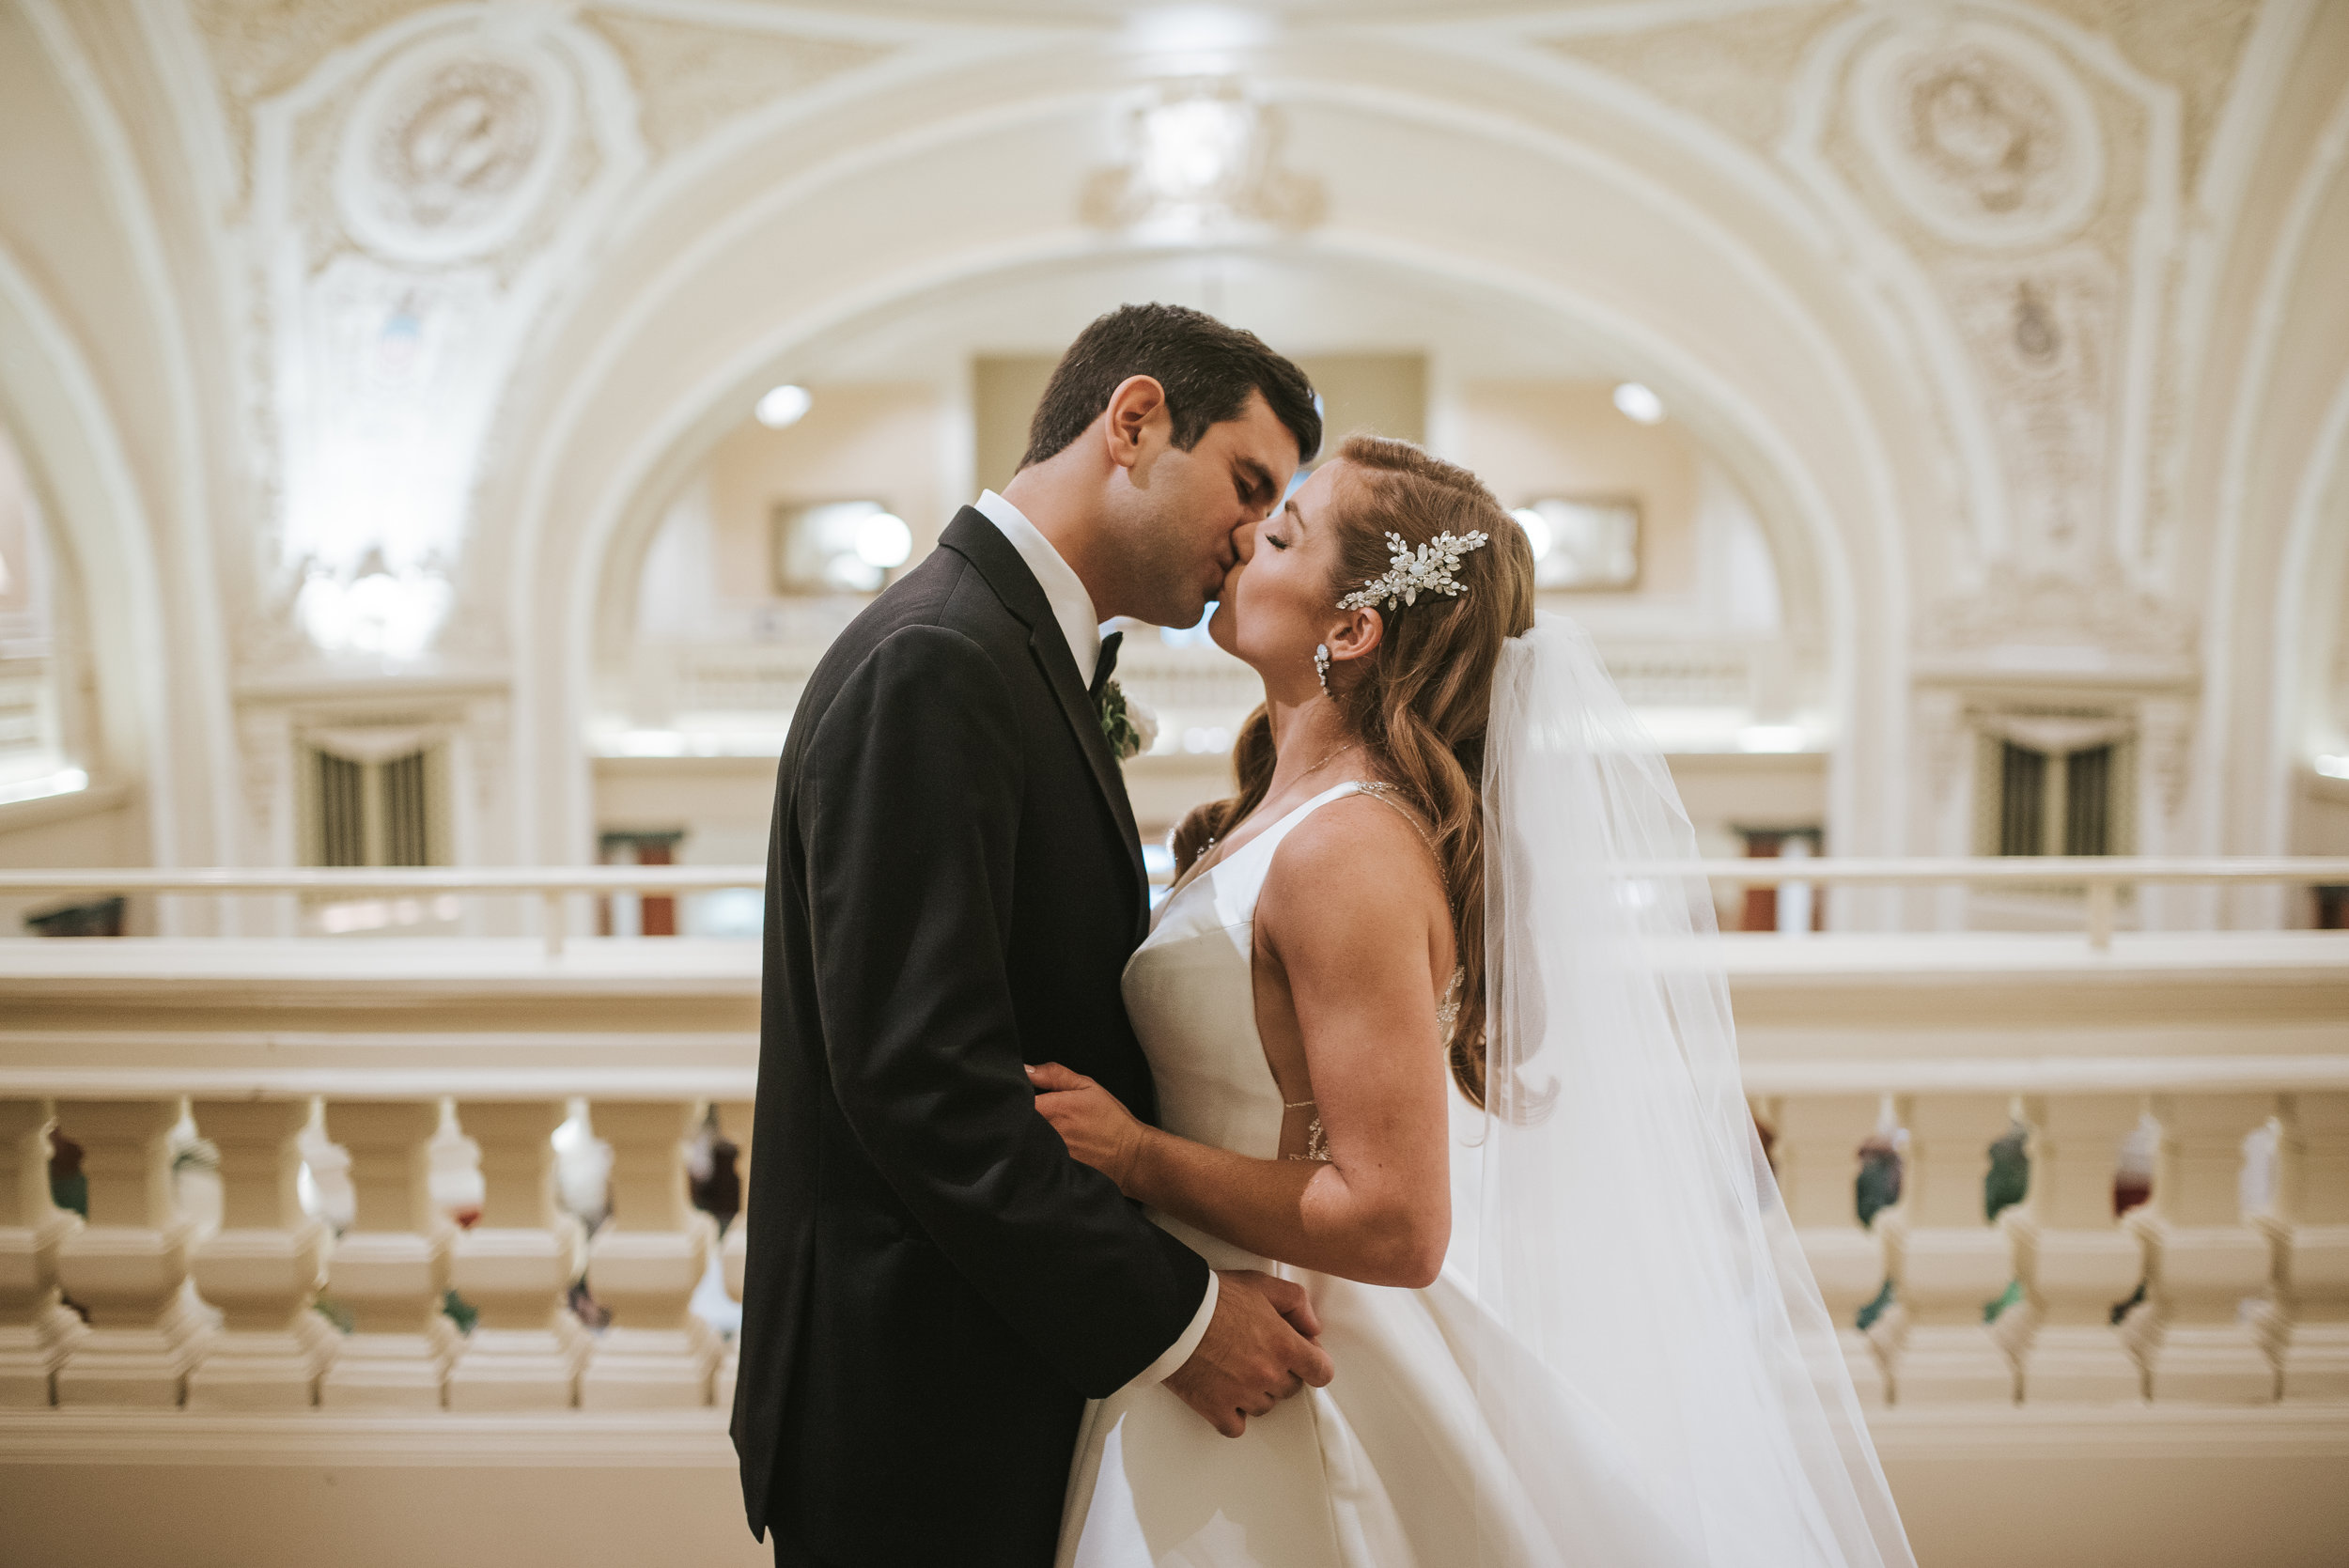 Click here to see the whole Downtown Mobile wedding!